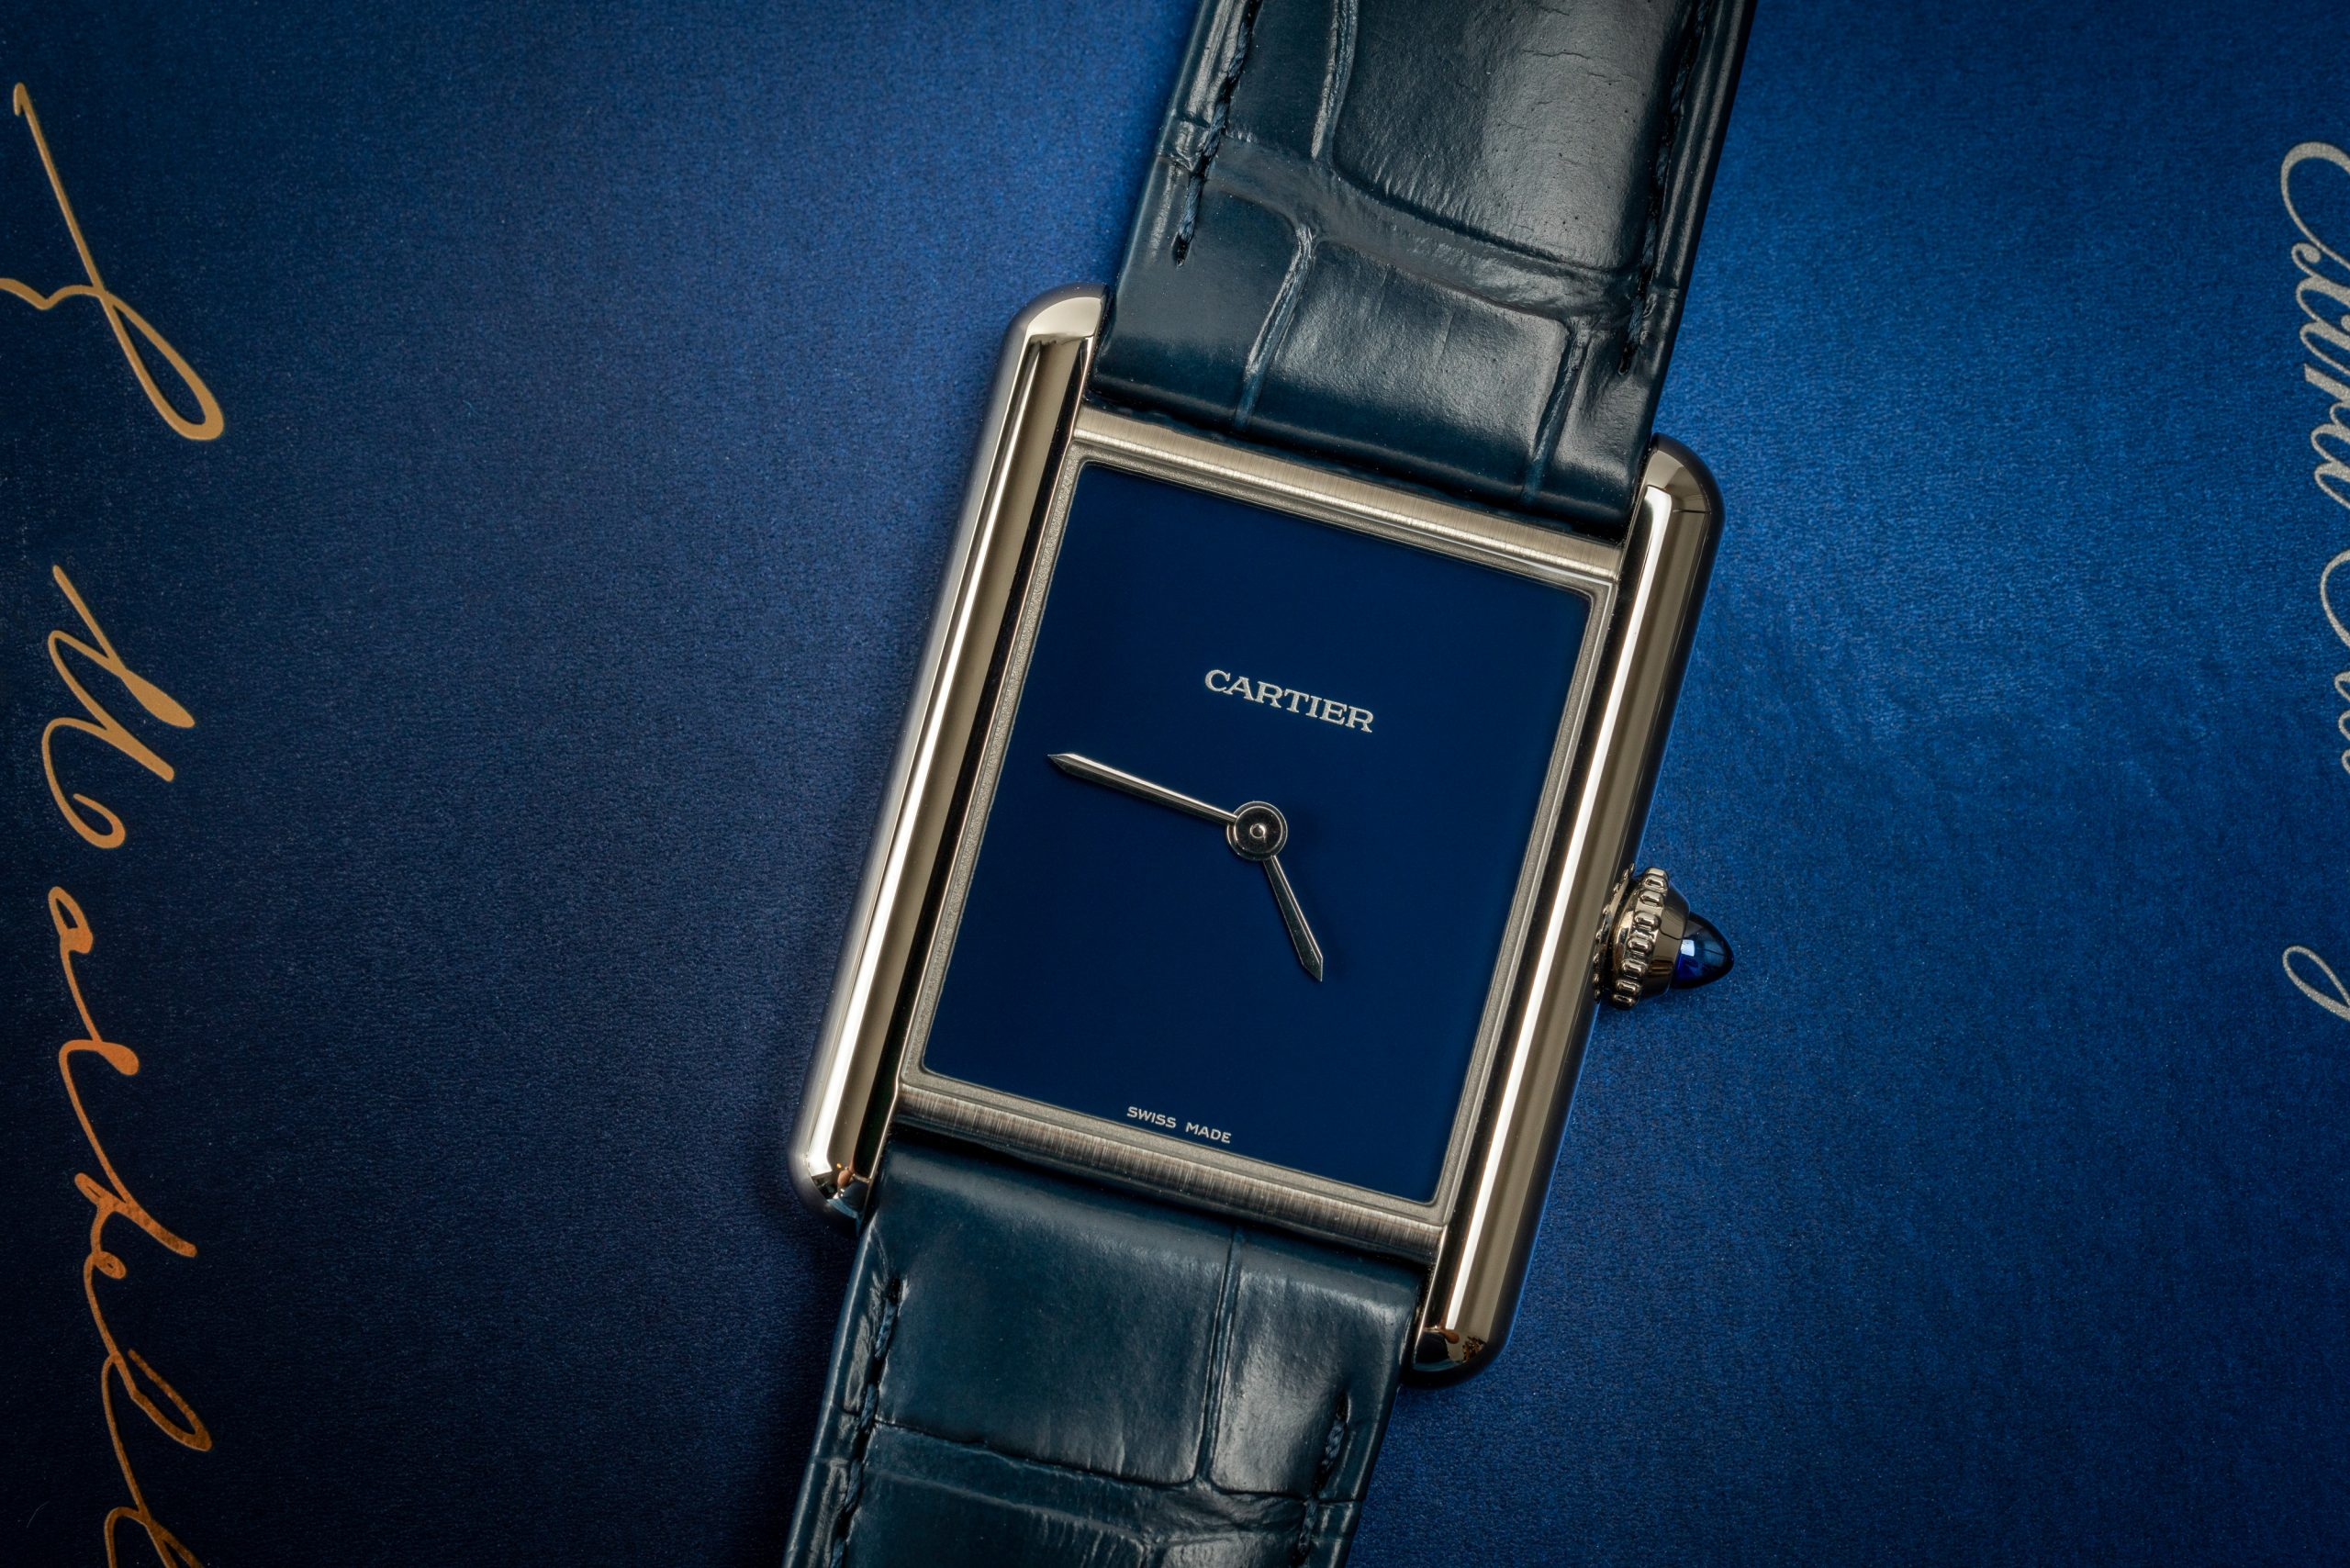 Cartier - Vintage Masters - Watch Photography - Done by Deon